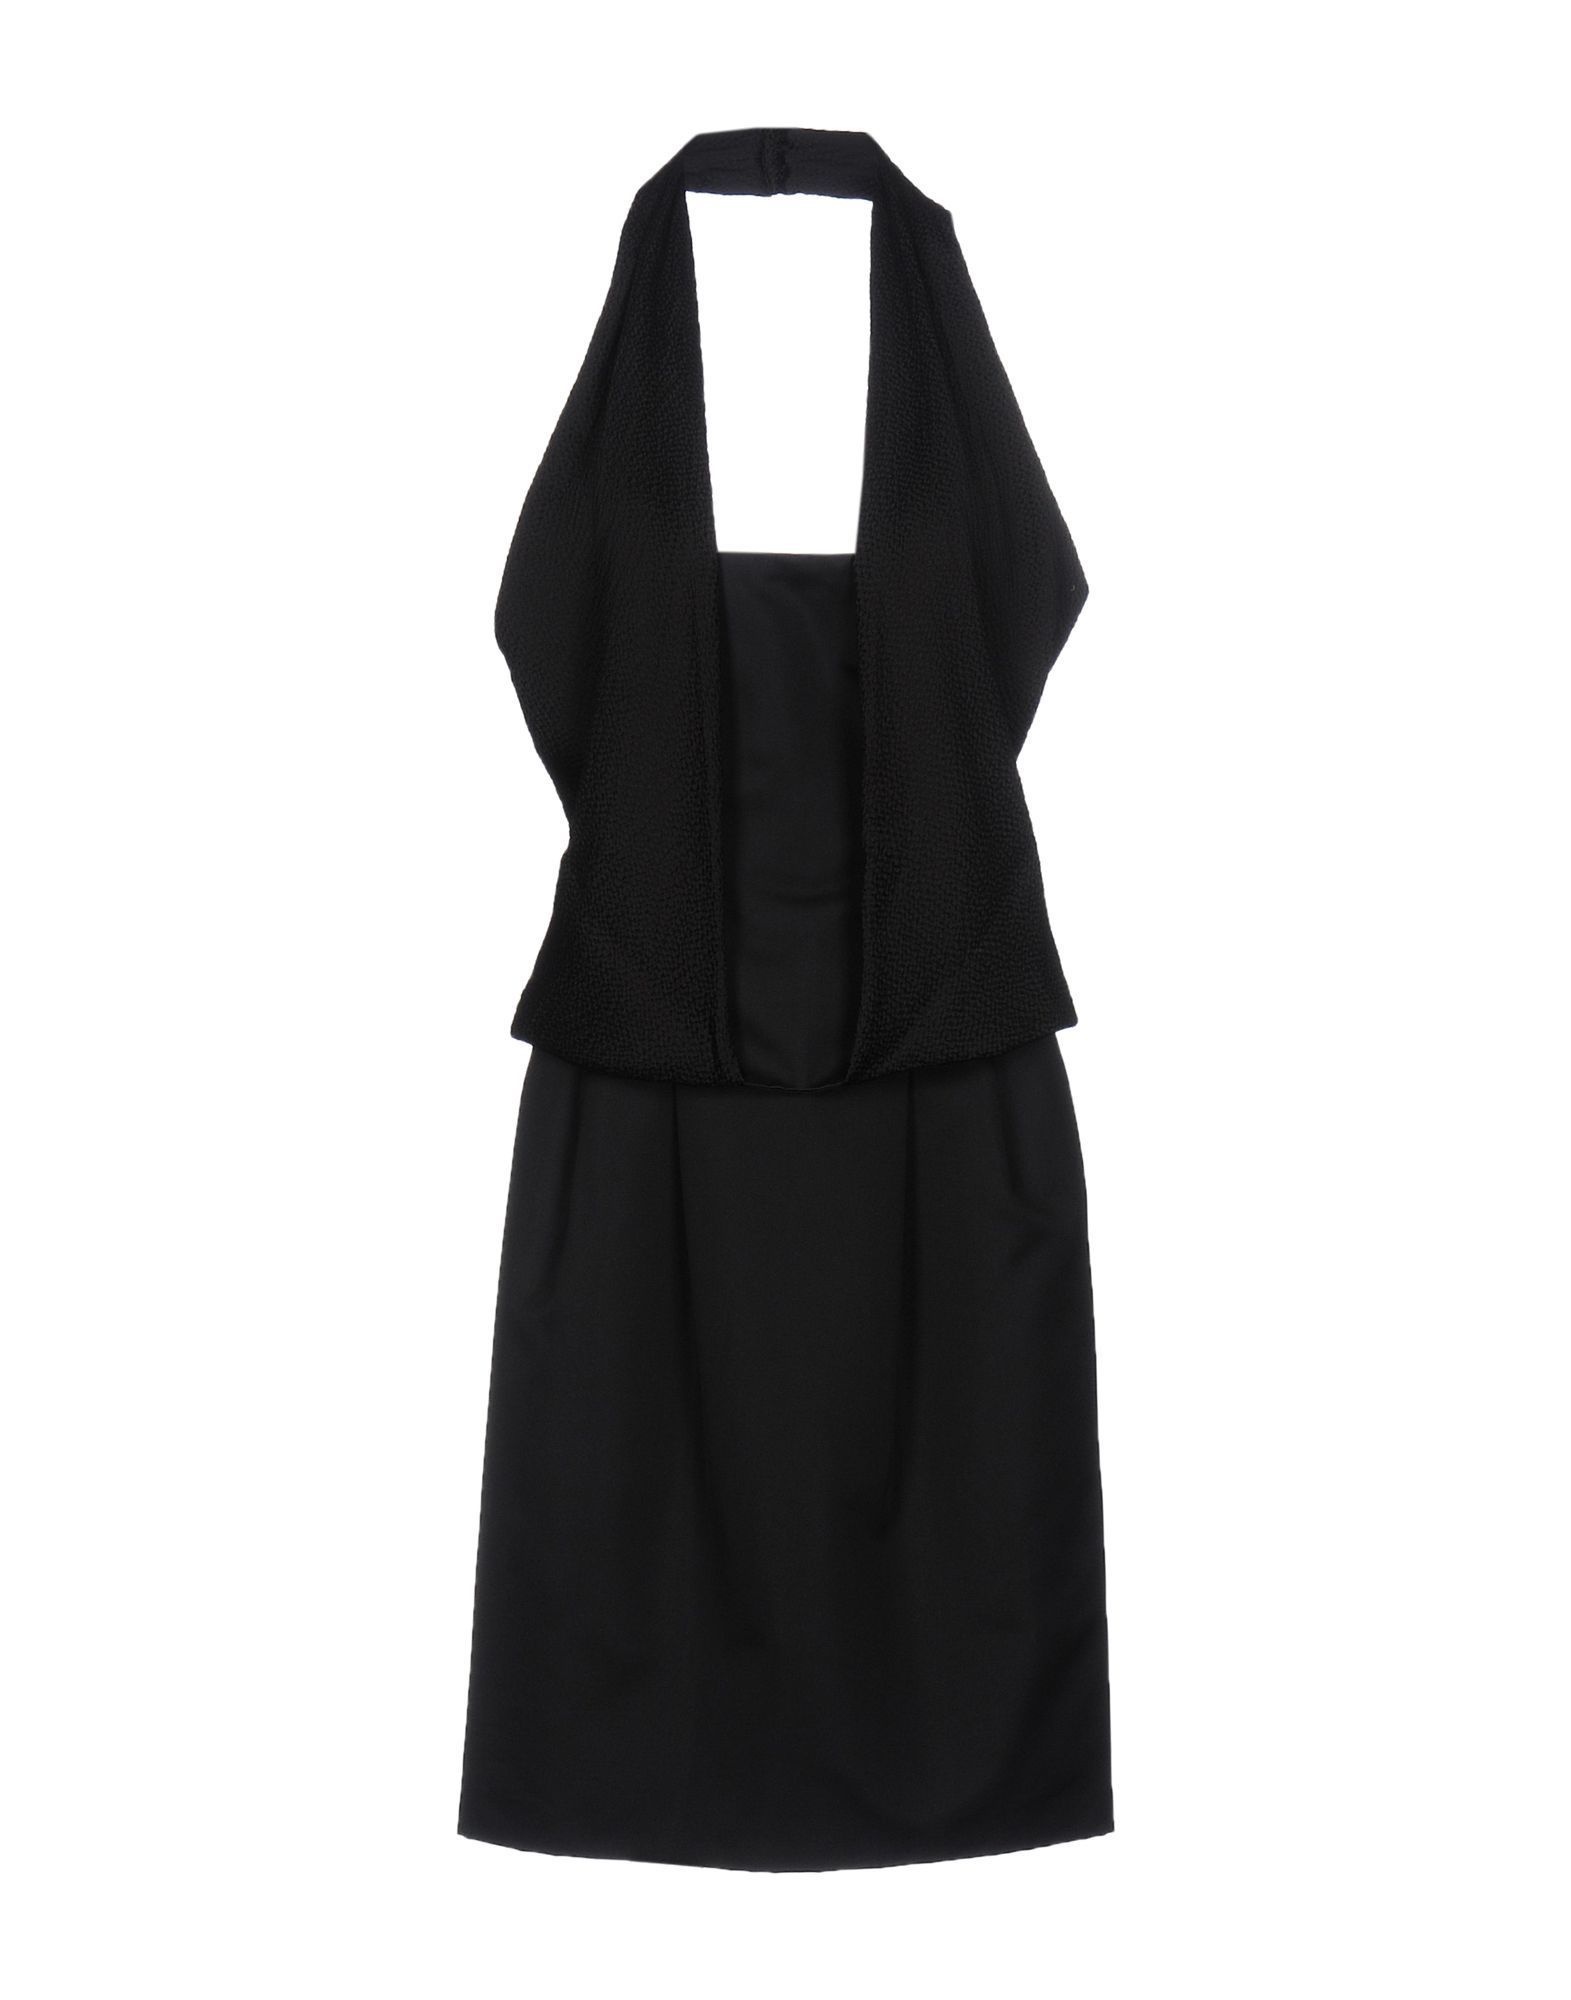 Pianoforte Di Max Mara Black Crepe Dress